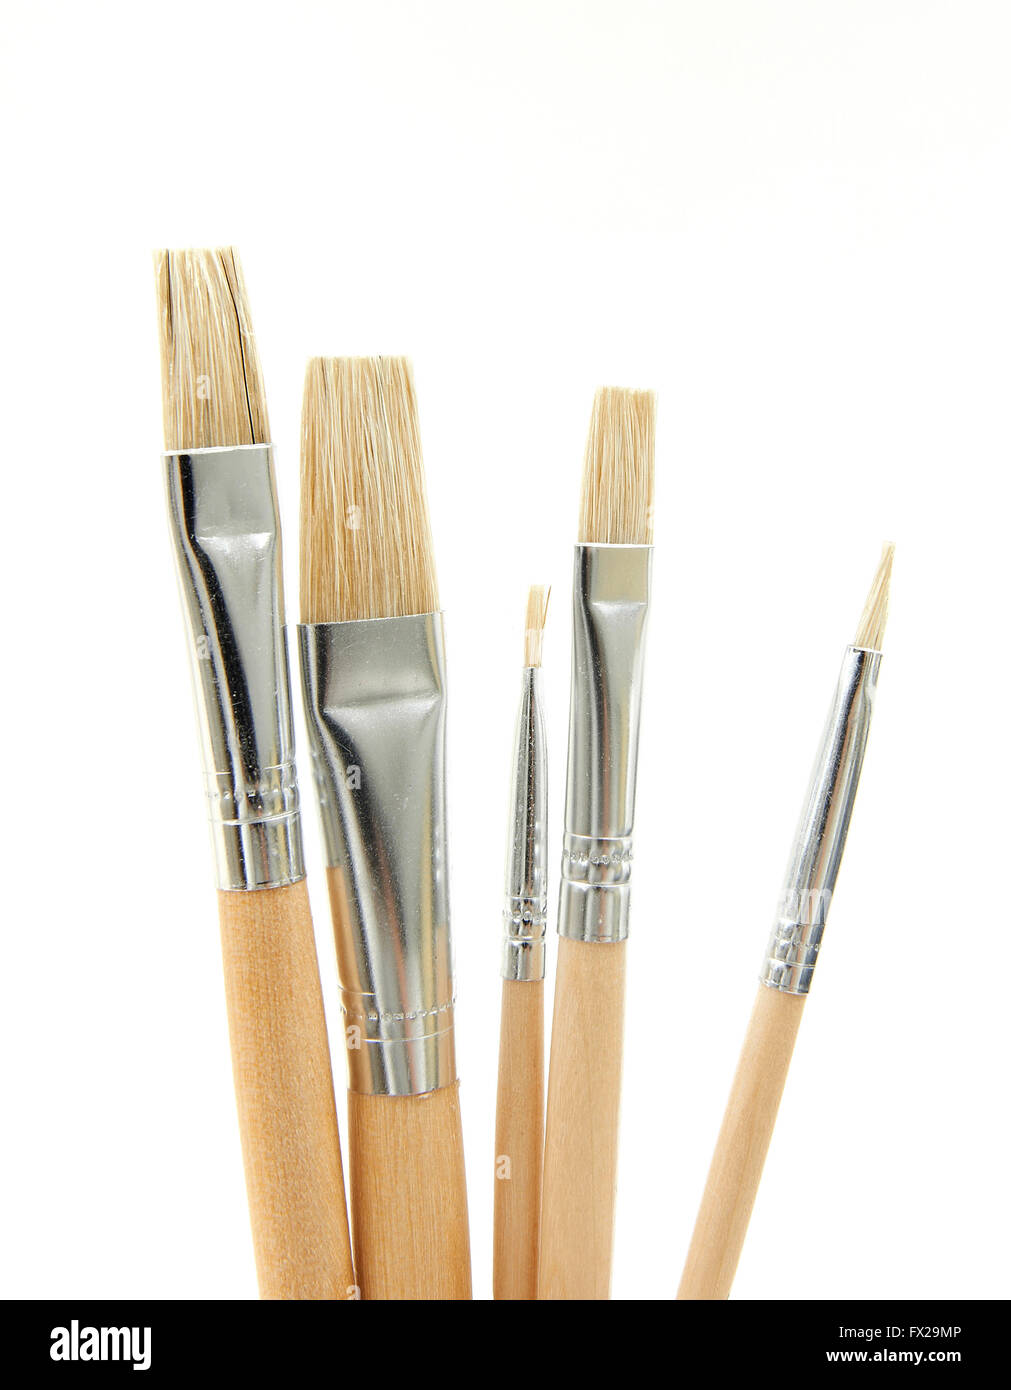 Paint brushes in different sizes on a white background - Stock Image